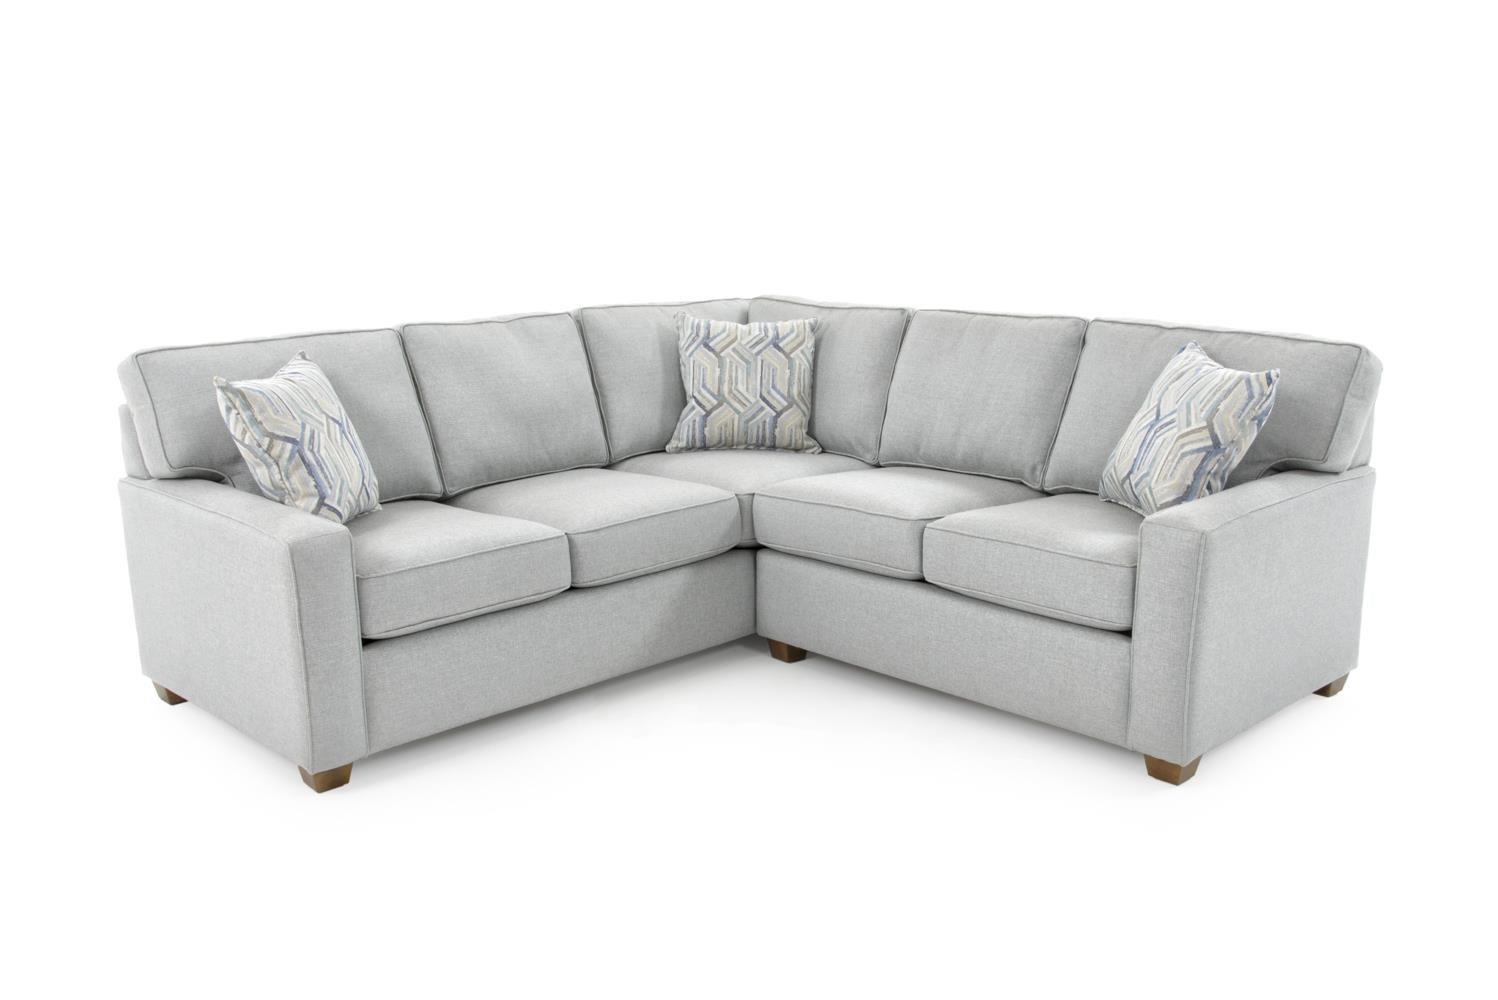 Capris Furniture 1452 Pc Corner Sectional Sofa ...